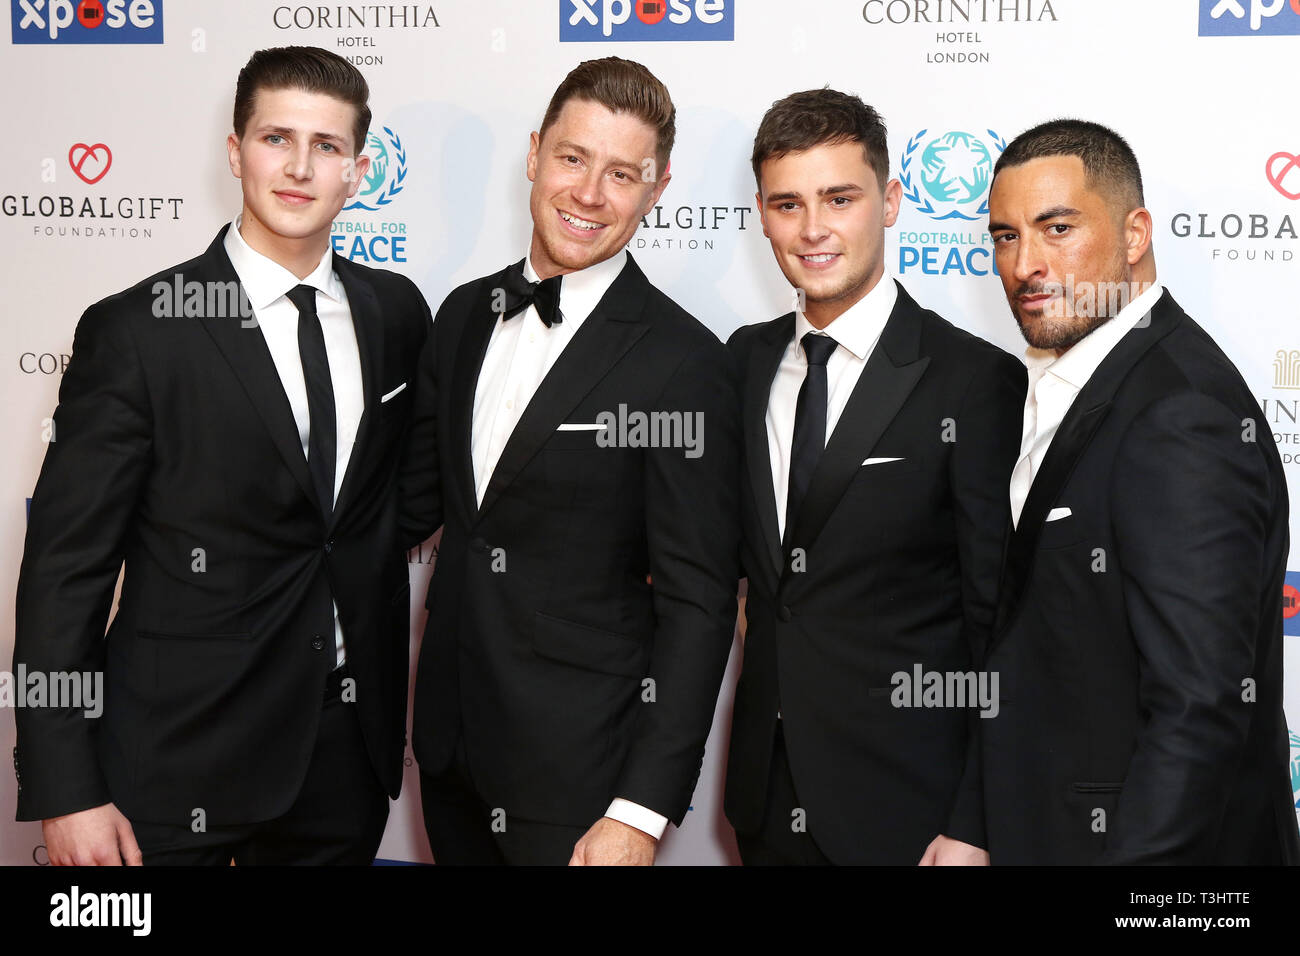 Jack Pack Band at the Football for Peace initiative dinner by Global Gift Foundation,London, UK.   8th April 2019 - Stock Image